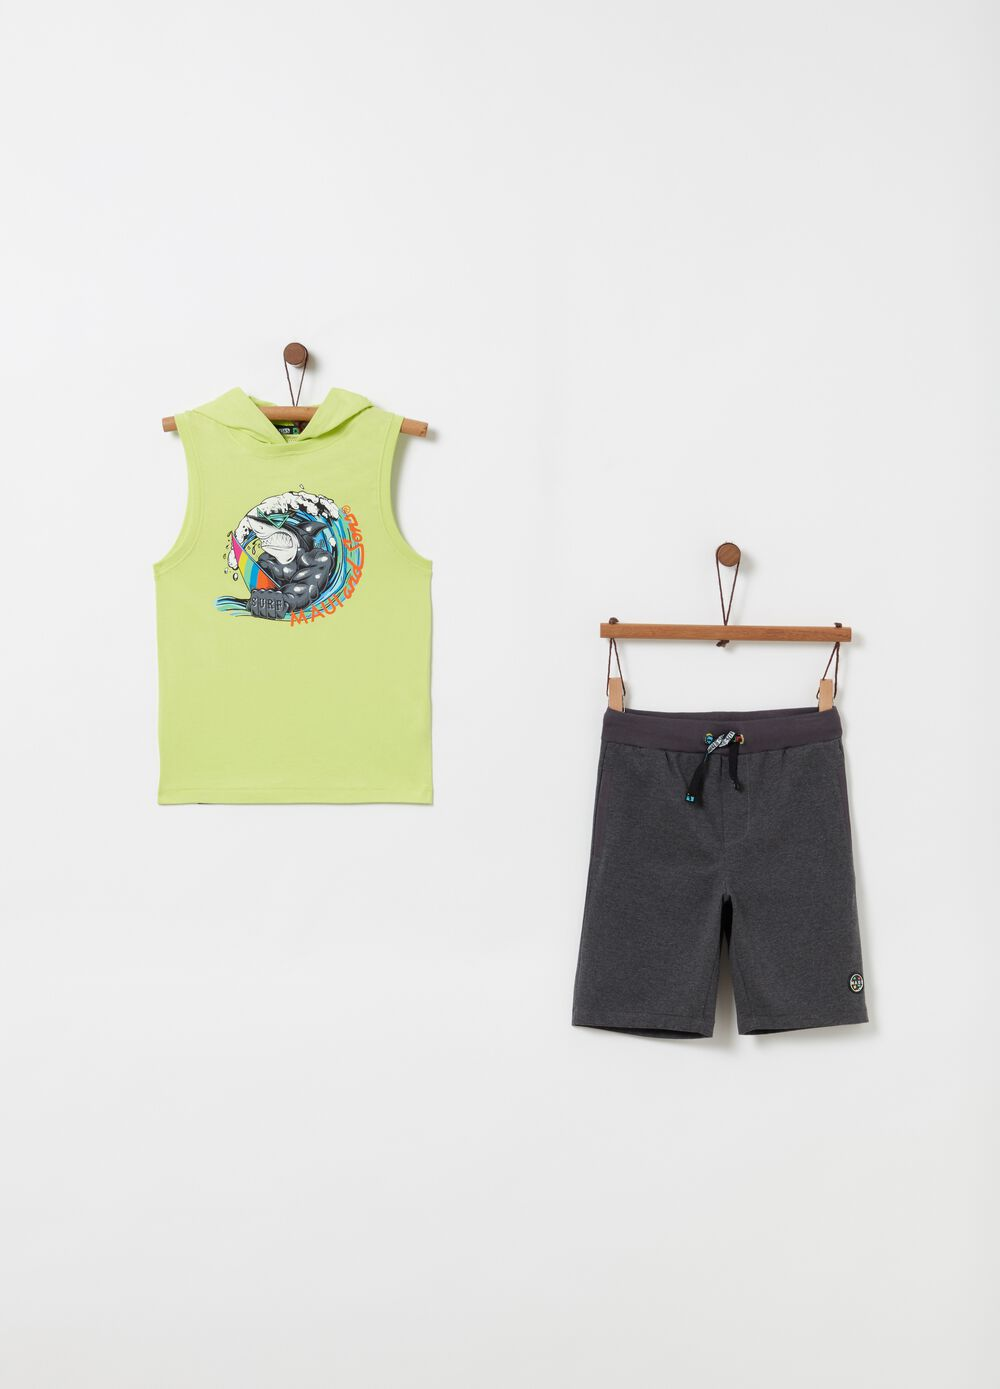 Cotton jogging set by Maui and Sons